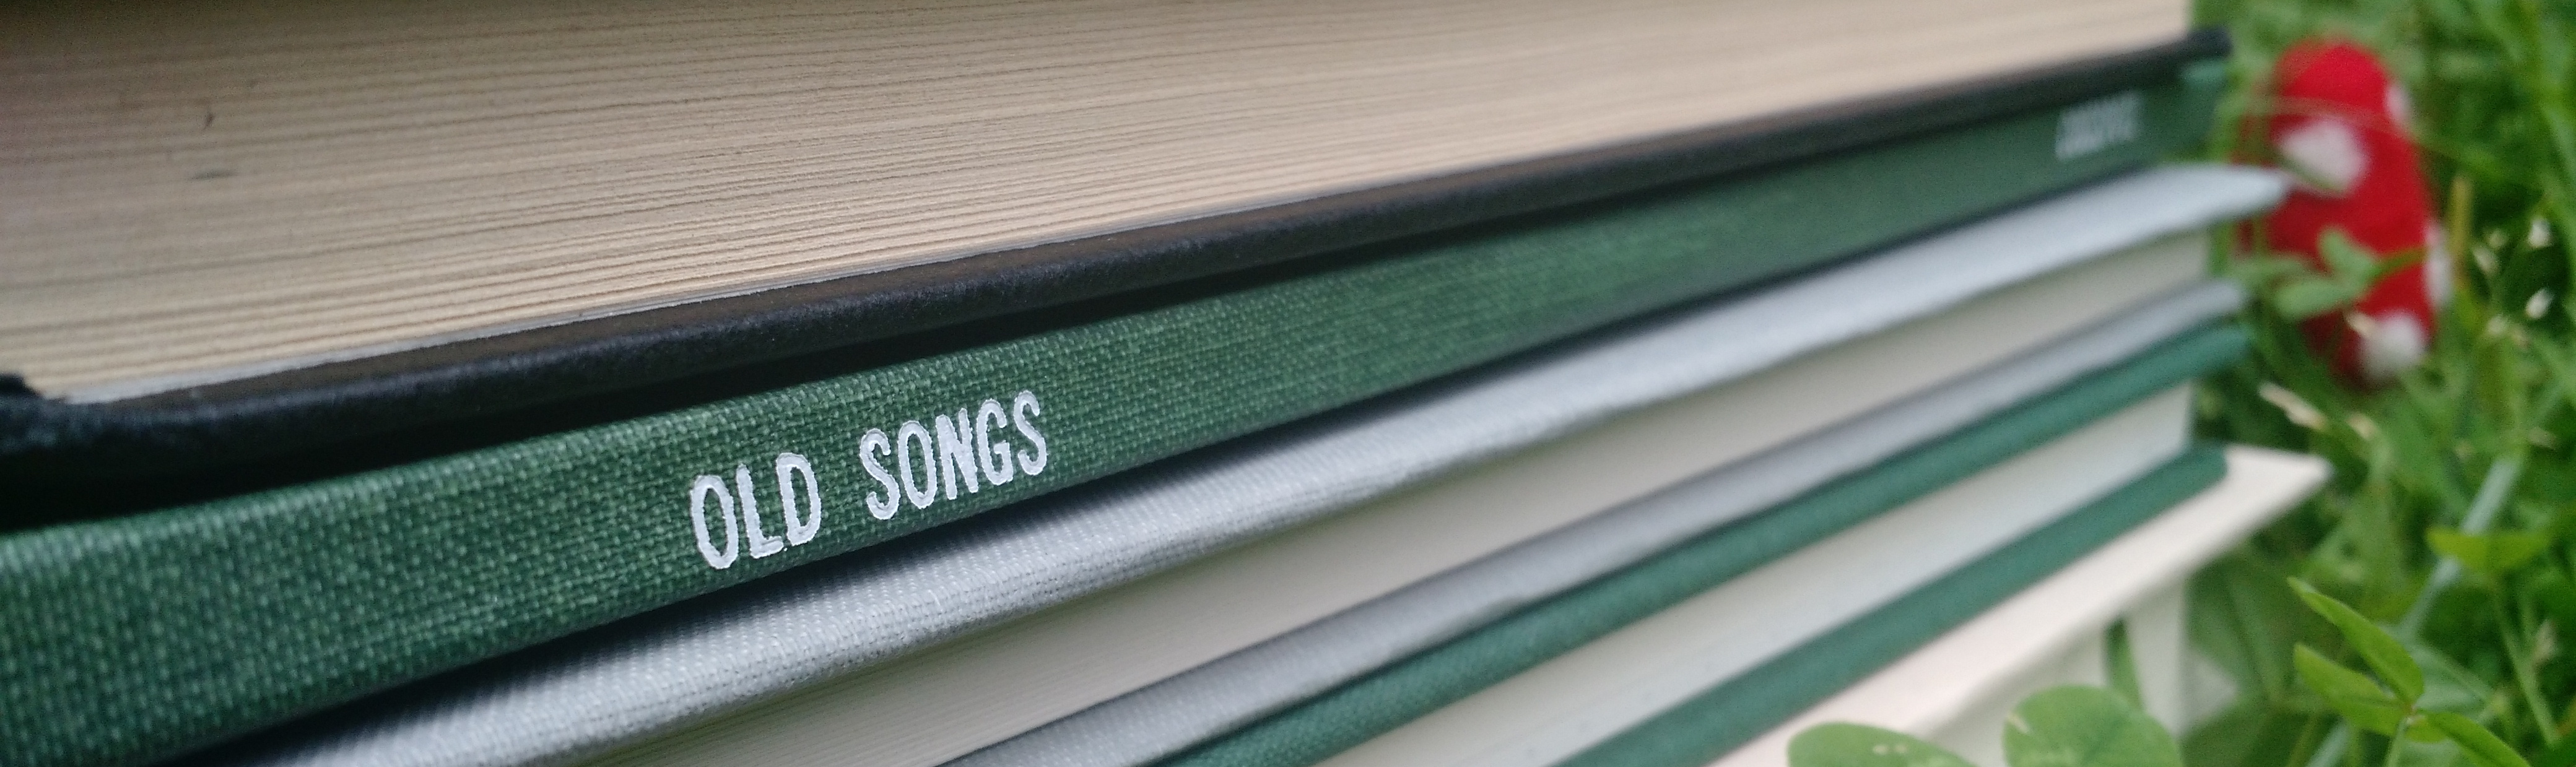 a picture of the spine of Old Songs in a stack of books, with clover and a toadstool in the background